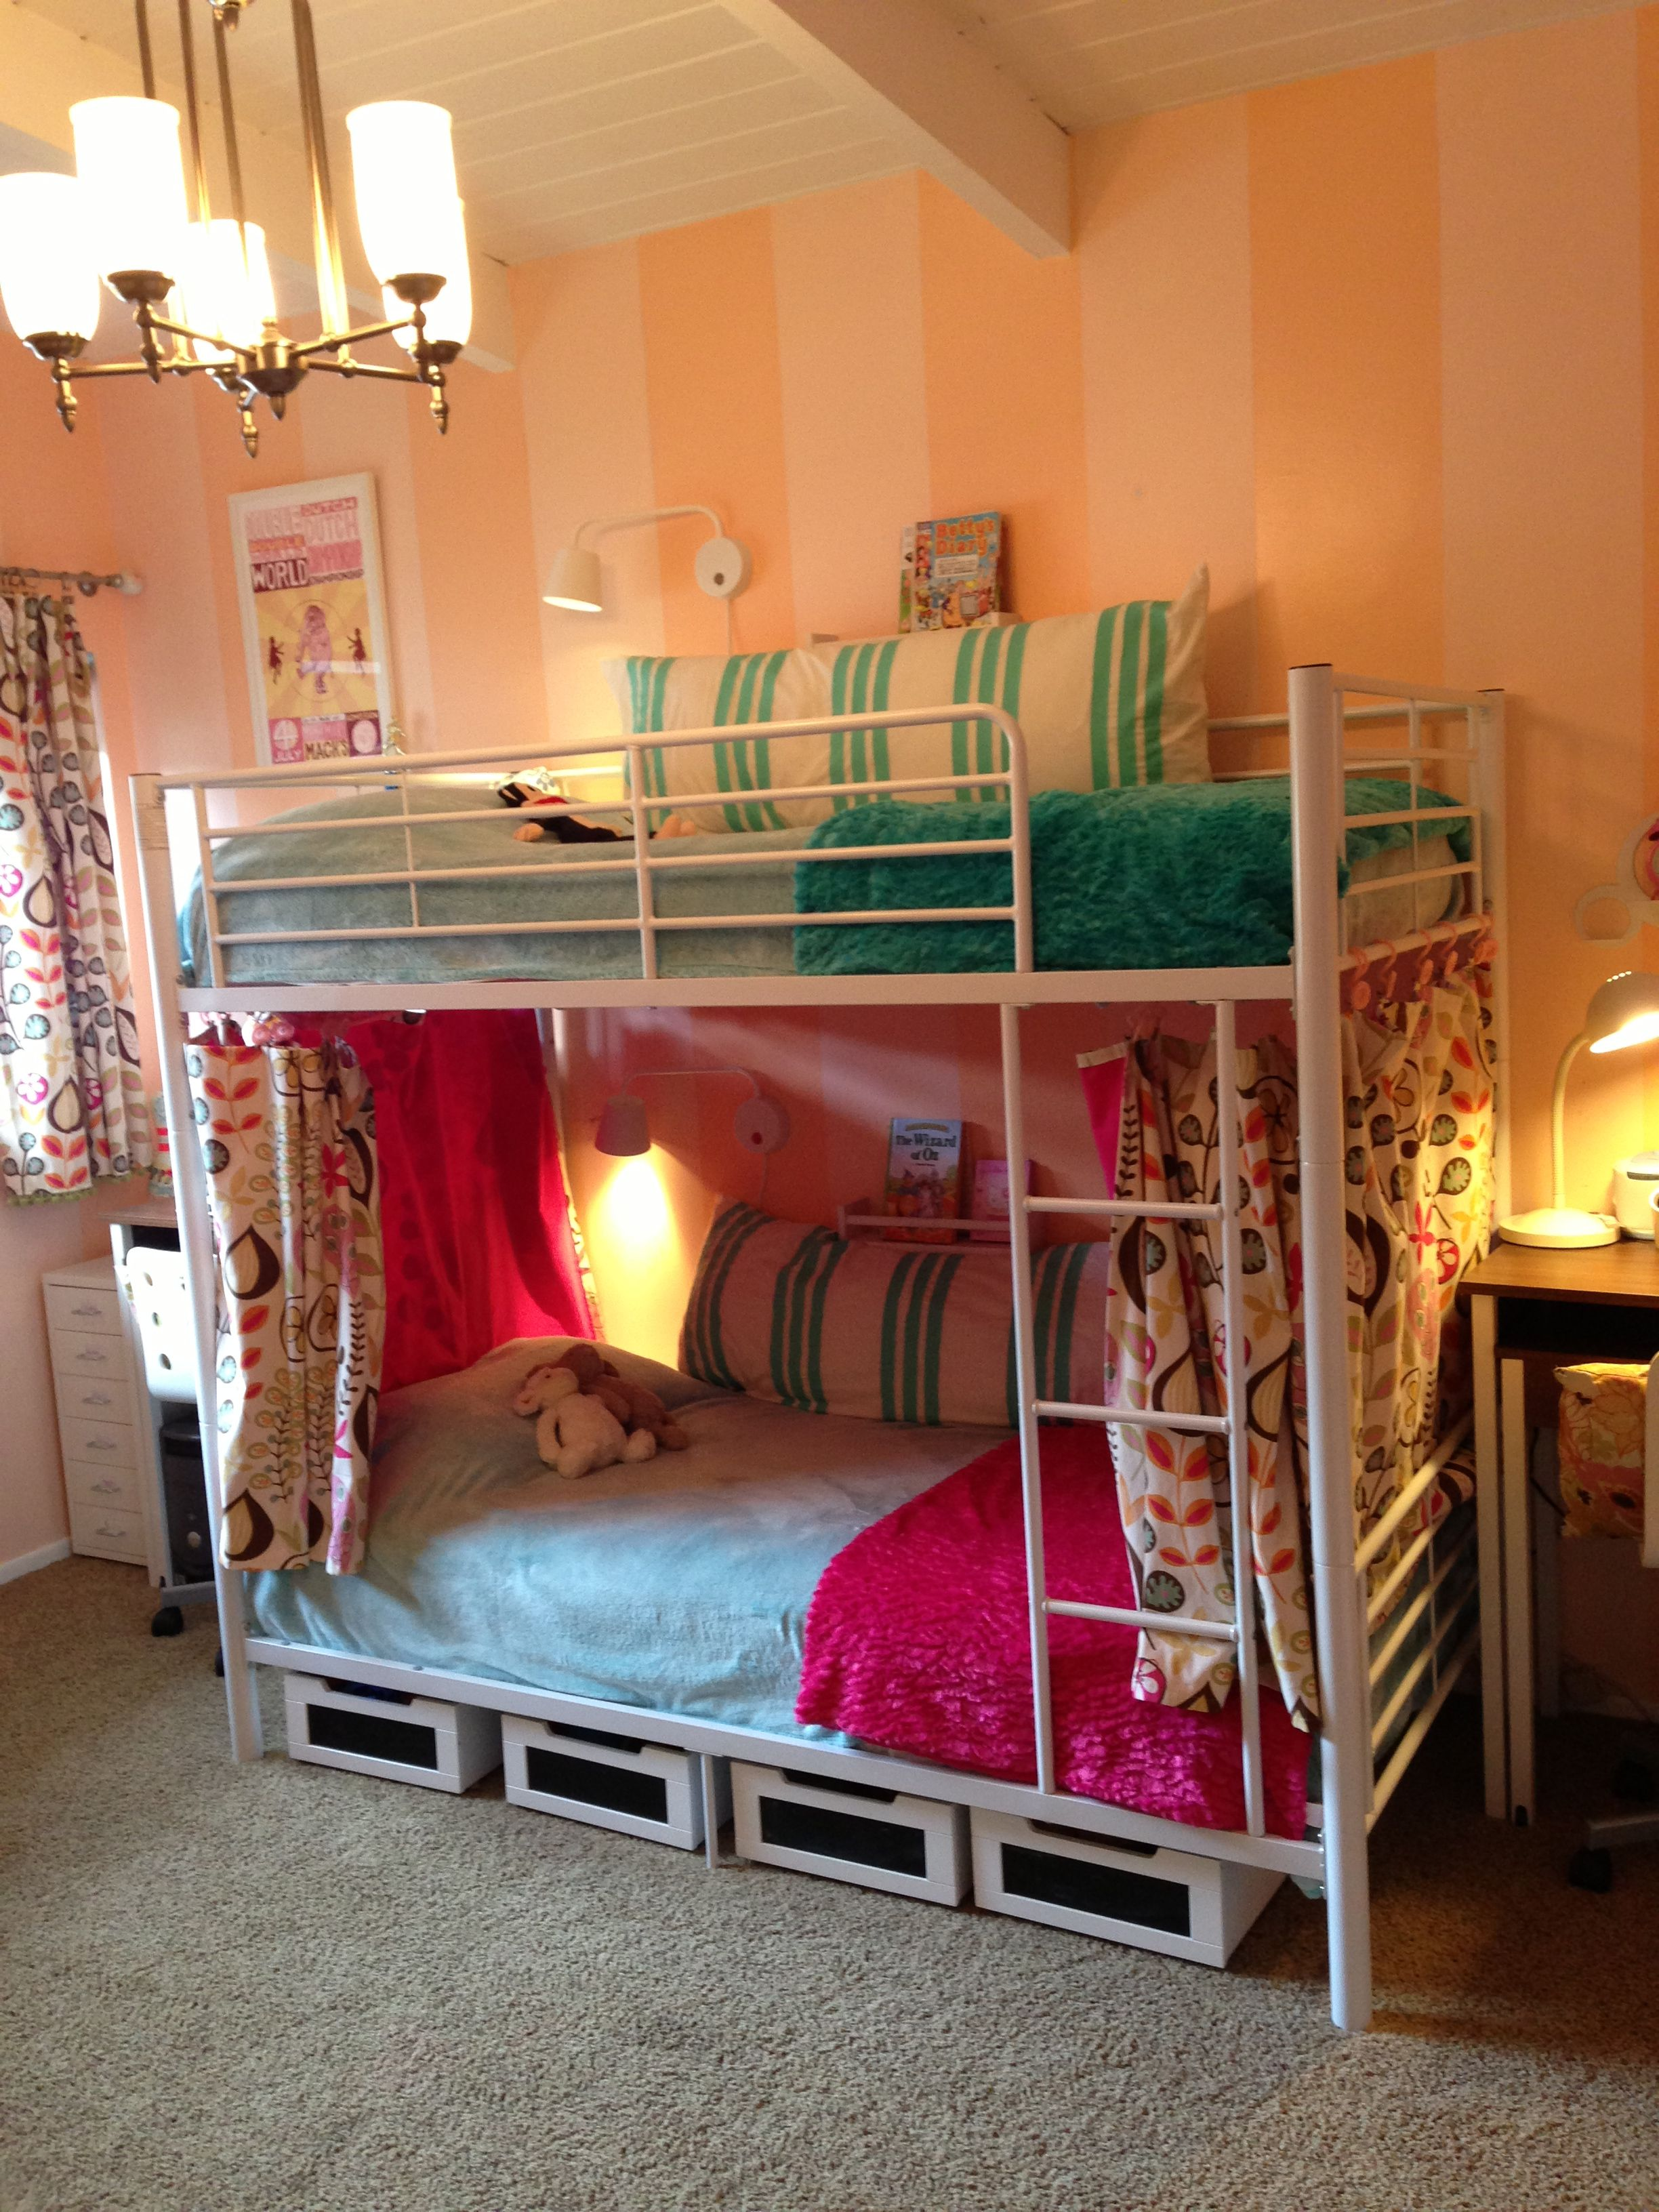 Inexpensive White Metal Bunkbed Cozied Up With Curtains Underbed Walmart Chalkboard Storage Ikea Swin Metal Bunk Beds Cool Bunk Beds Bunk Beds For Girls Room